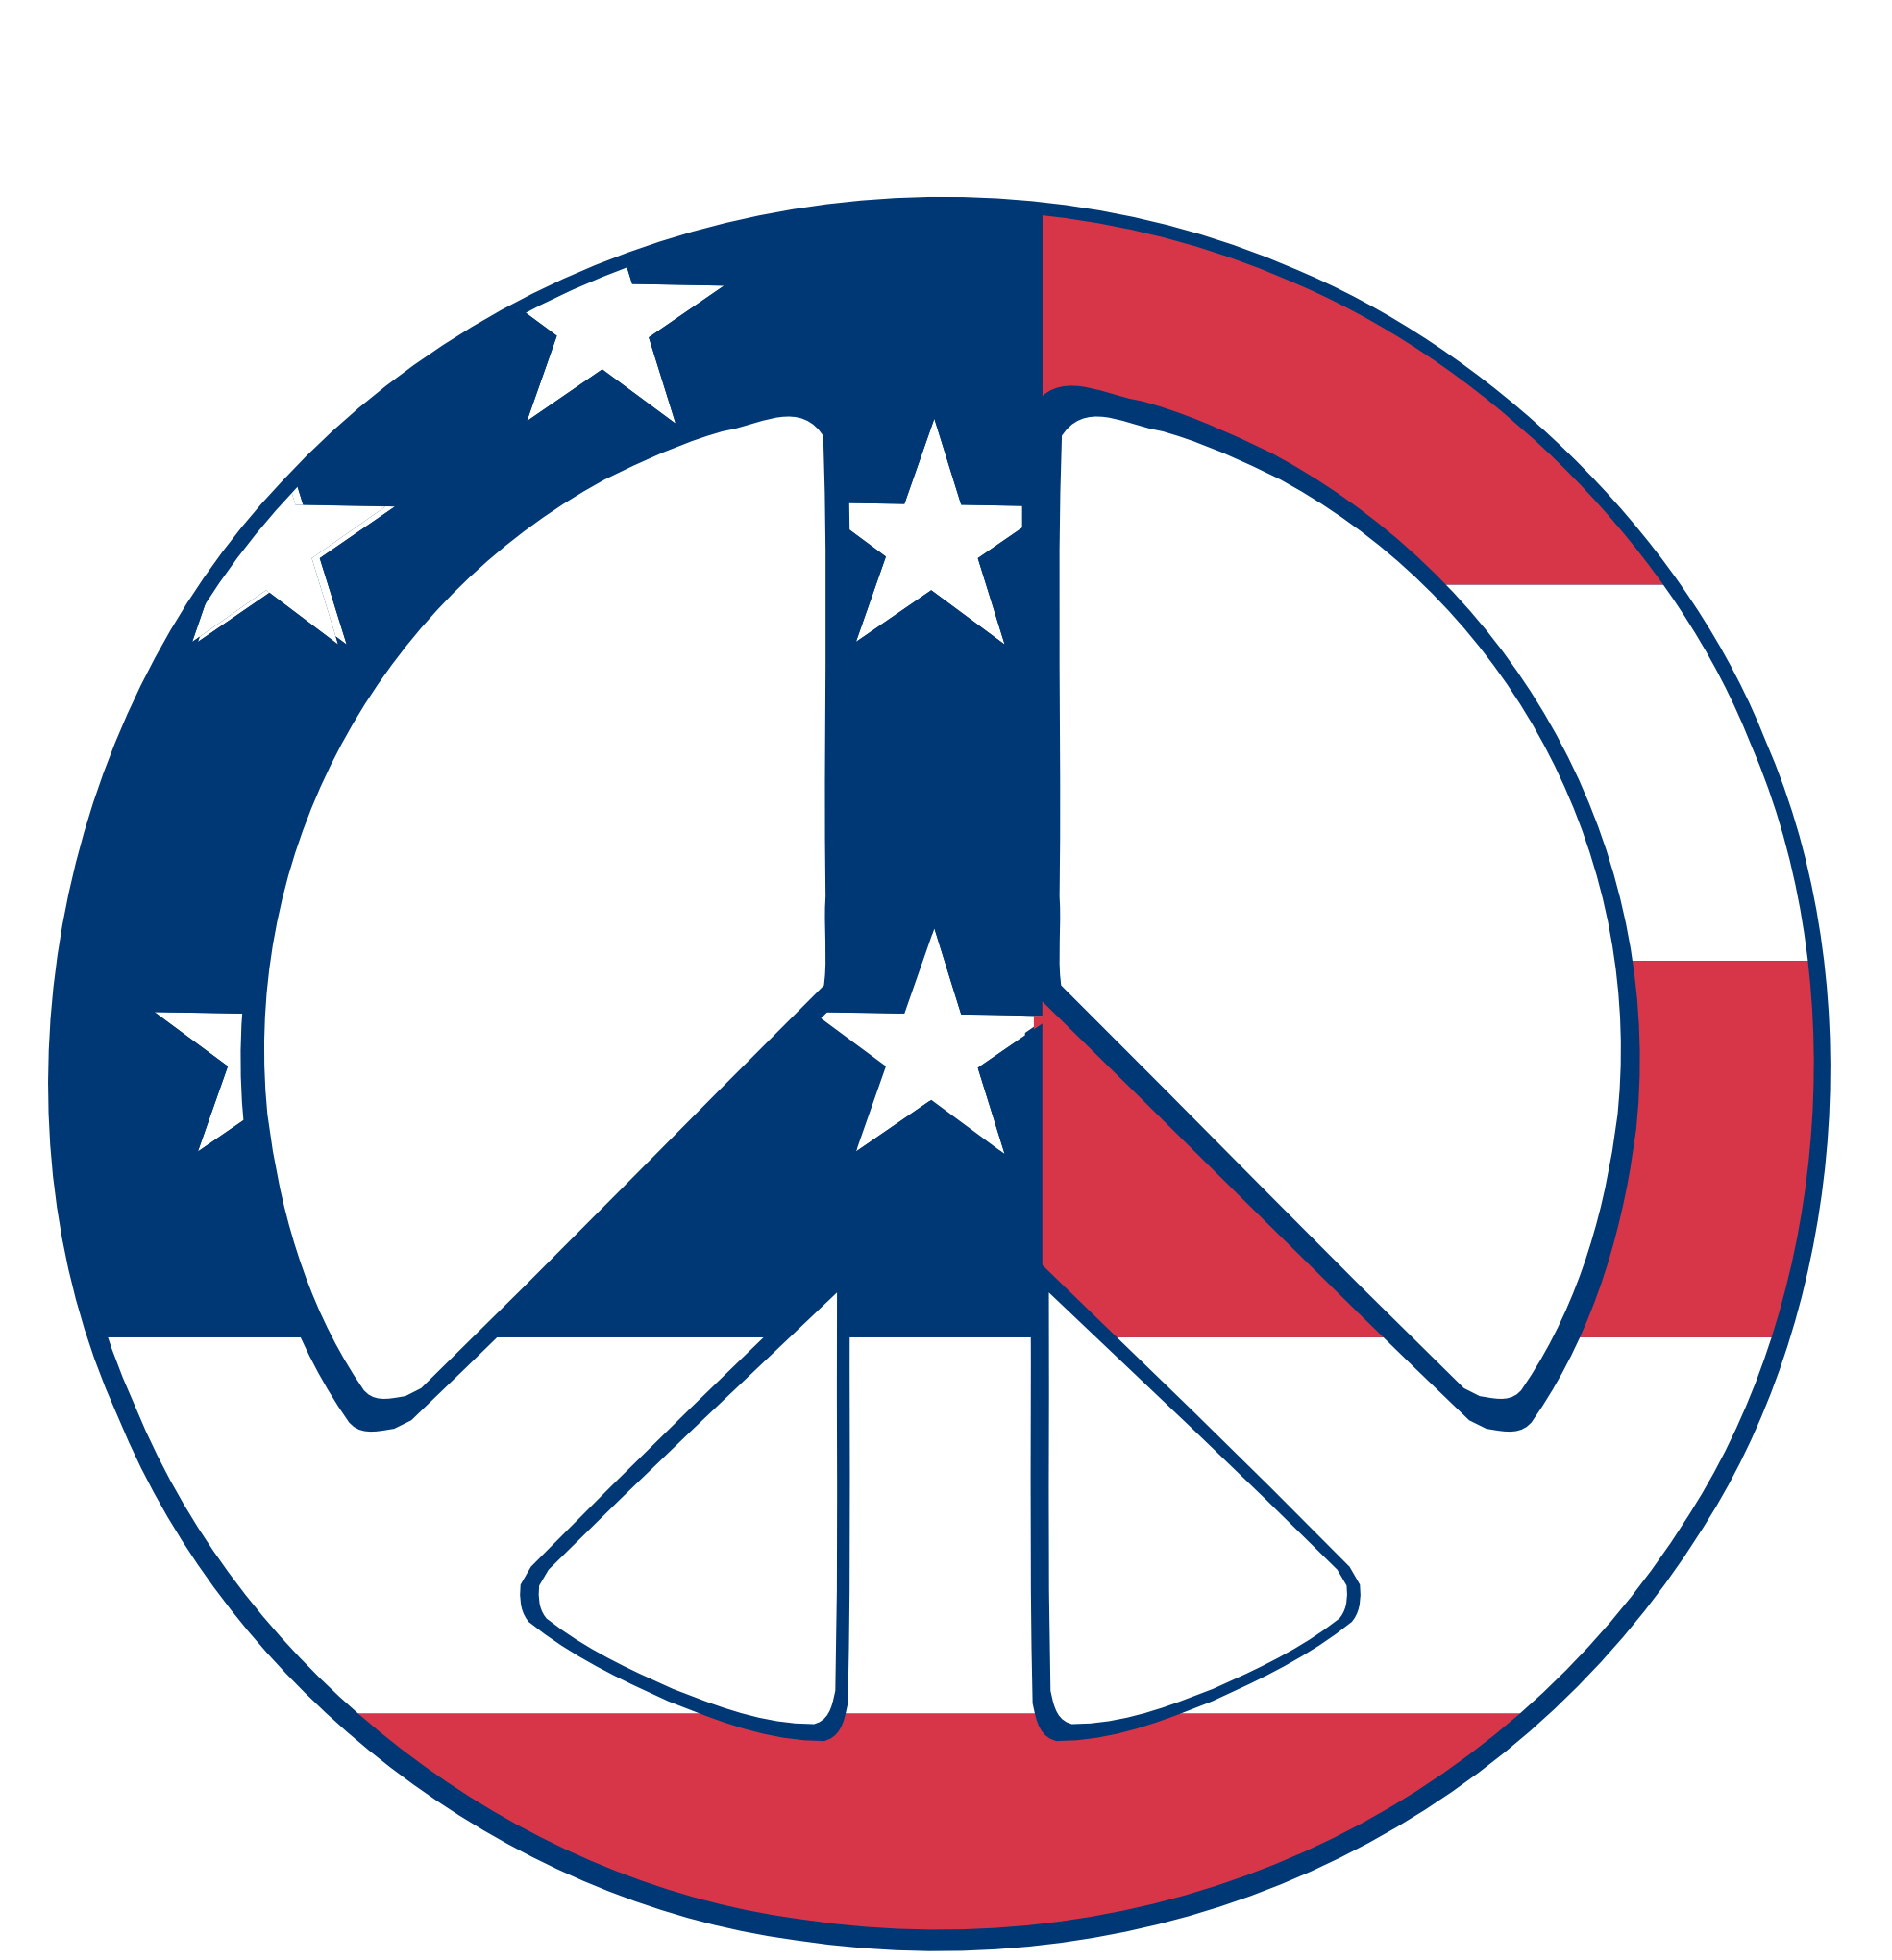 Peace clipart patriotic. Sigh group free clip